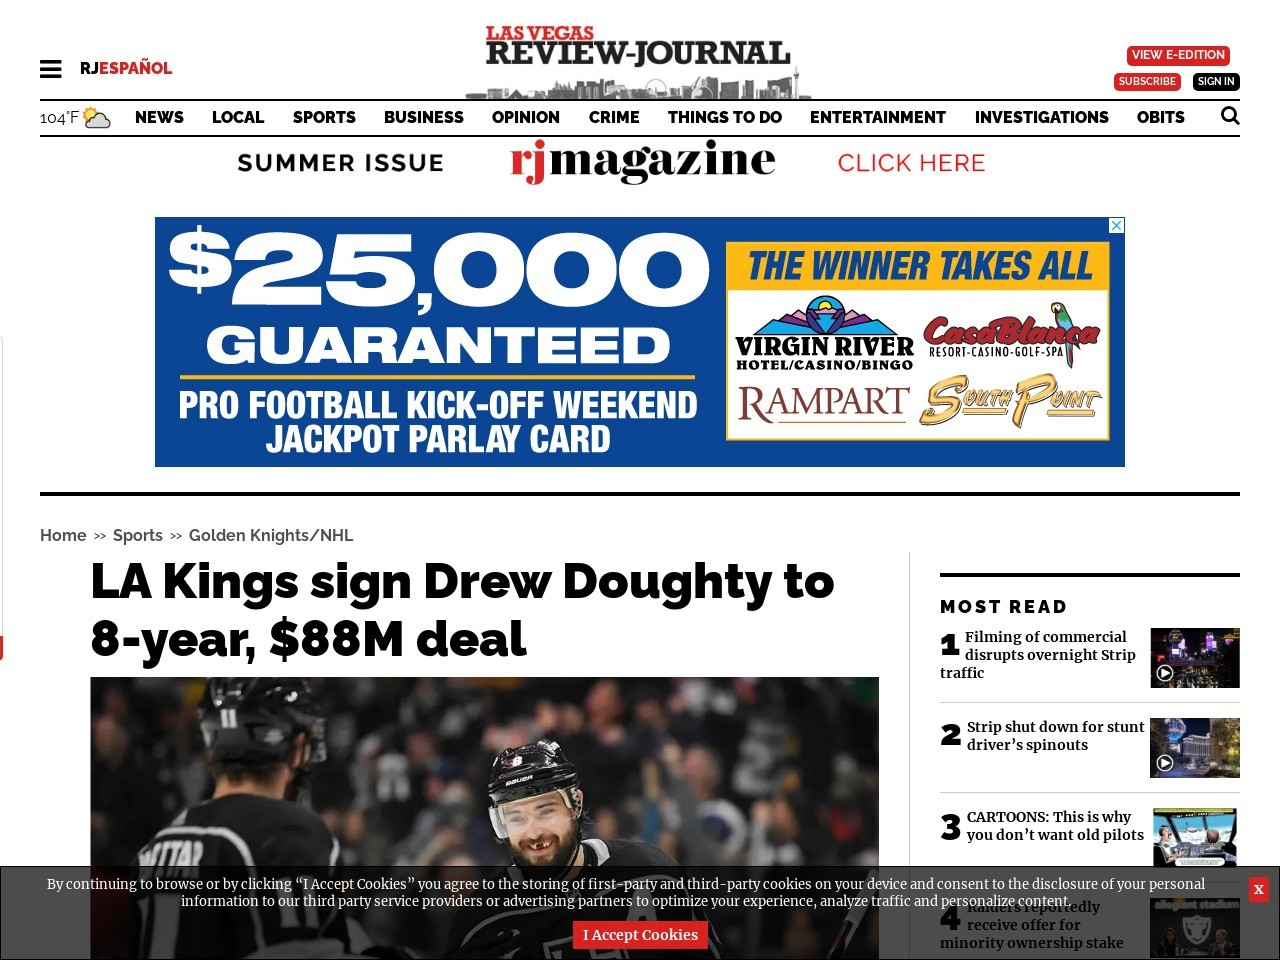 LA Kings sign Drew Doughty to 8-year, $88M deal